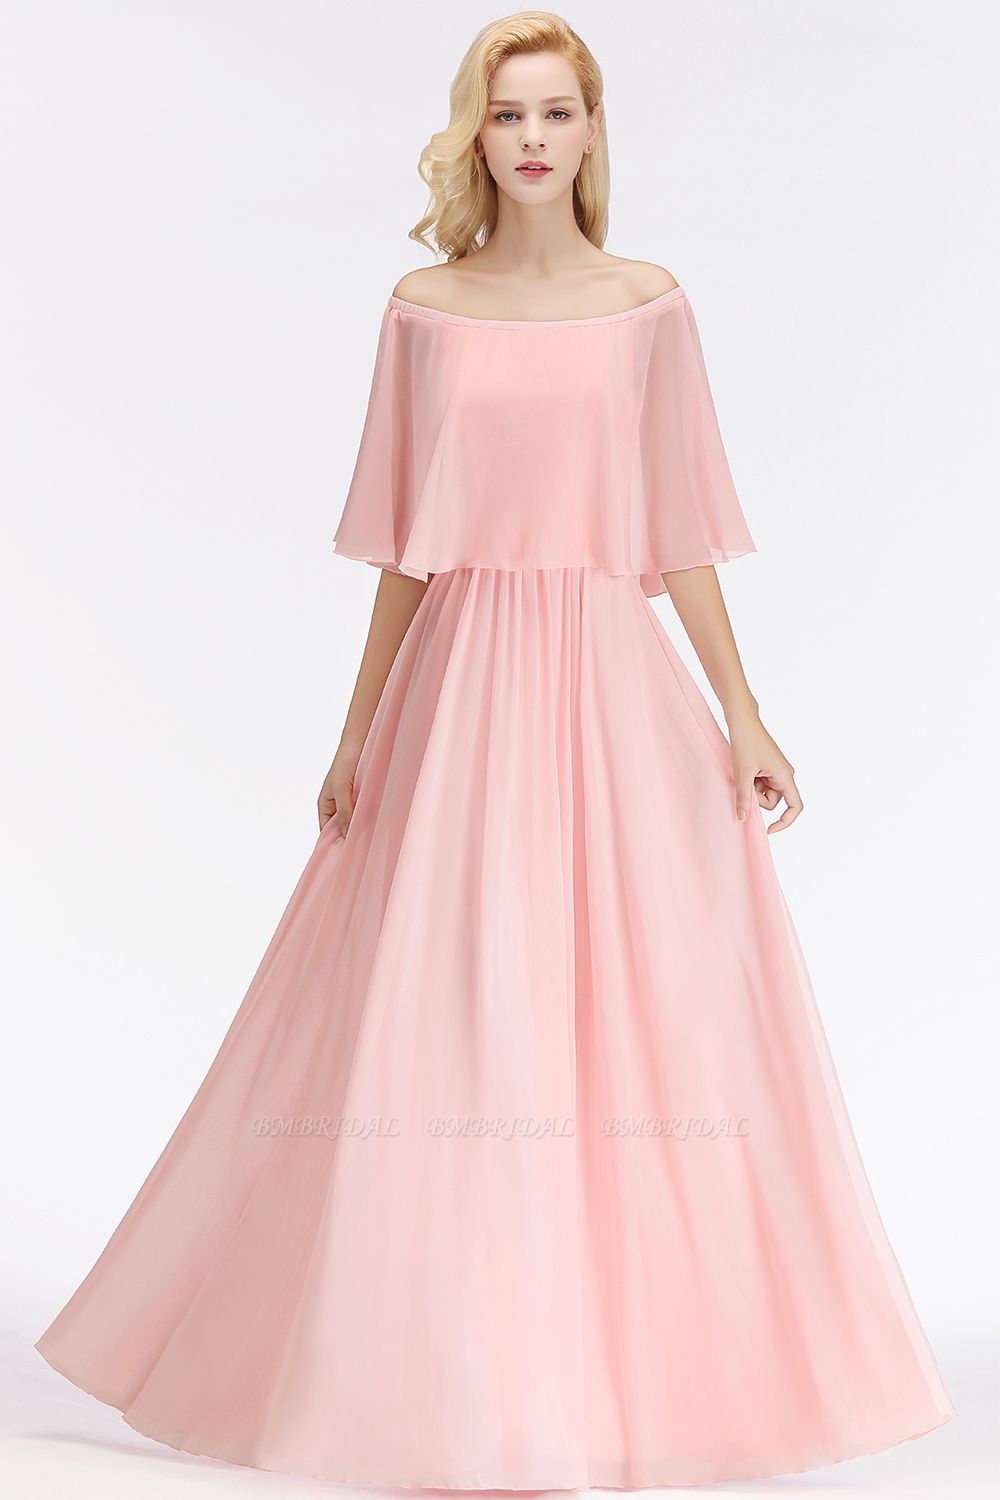 Affordable Flounced Crinkle Halter Bridesmaid Dresses Modest Pink Chiffon Wedding Party Dress